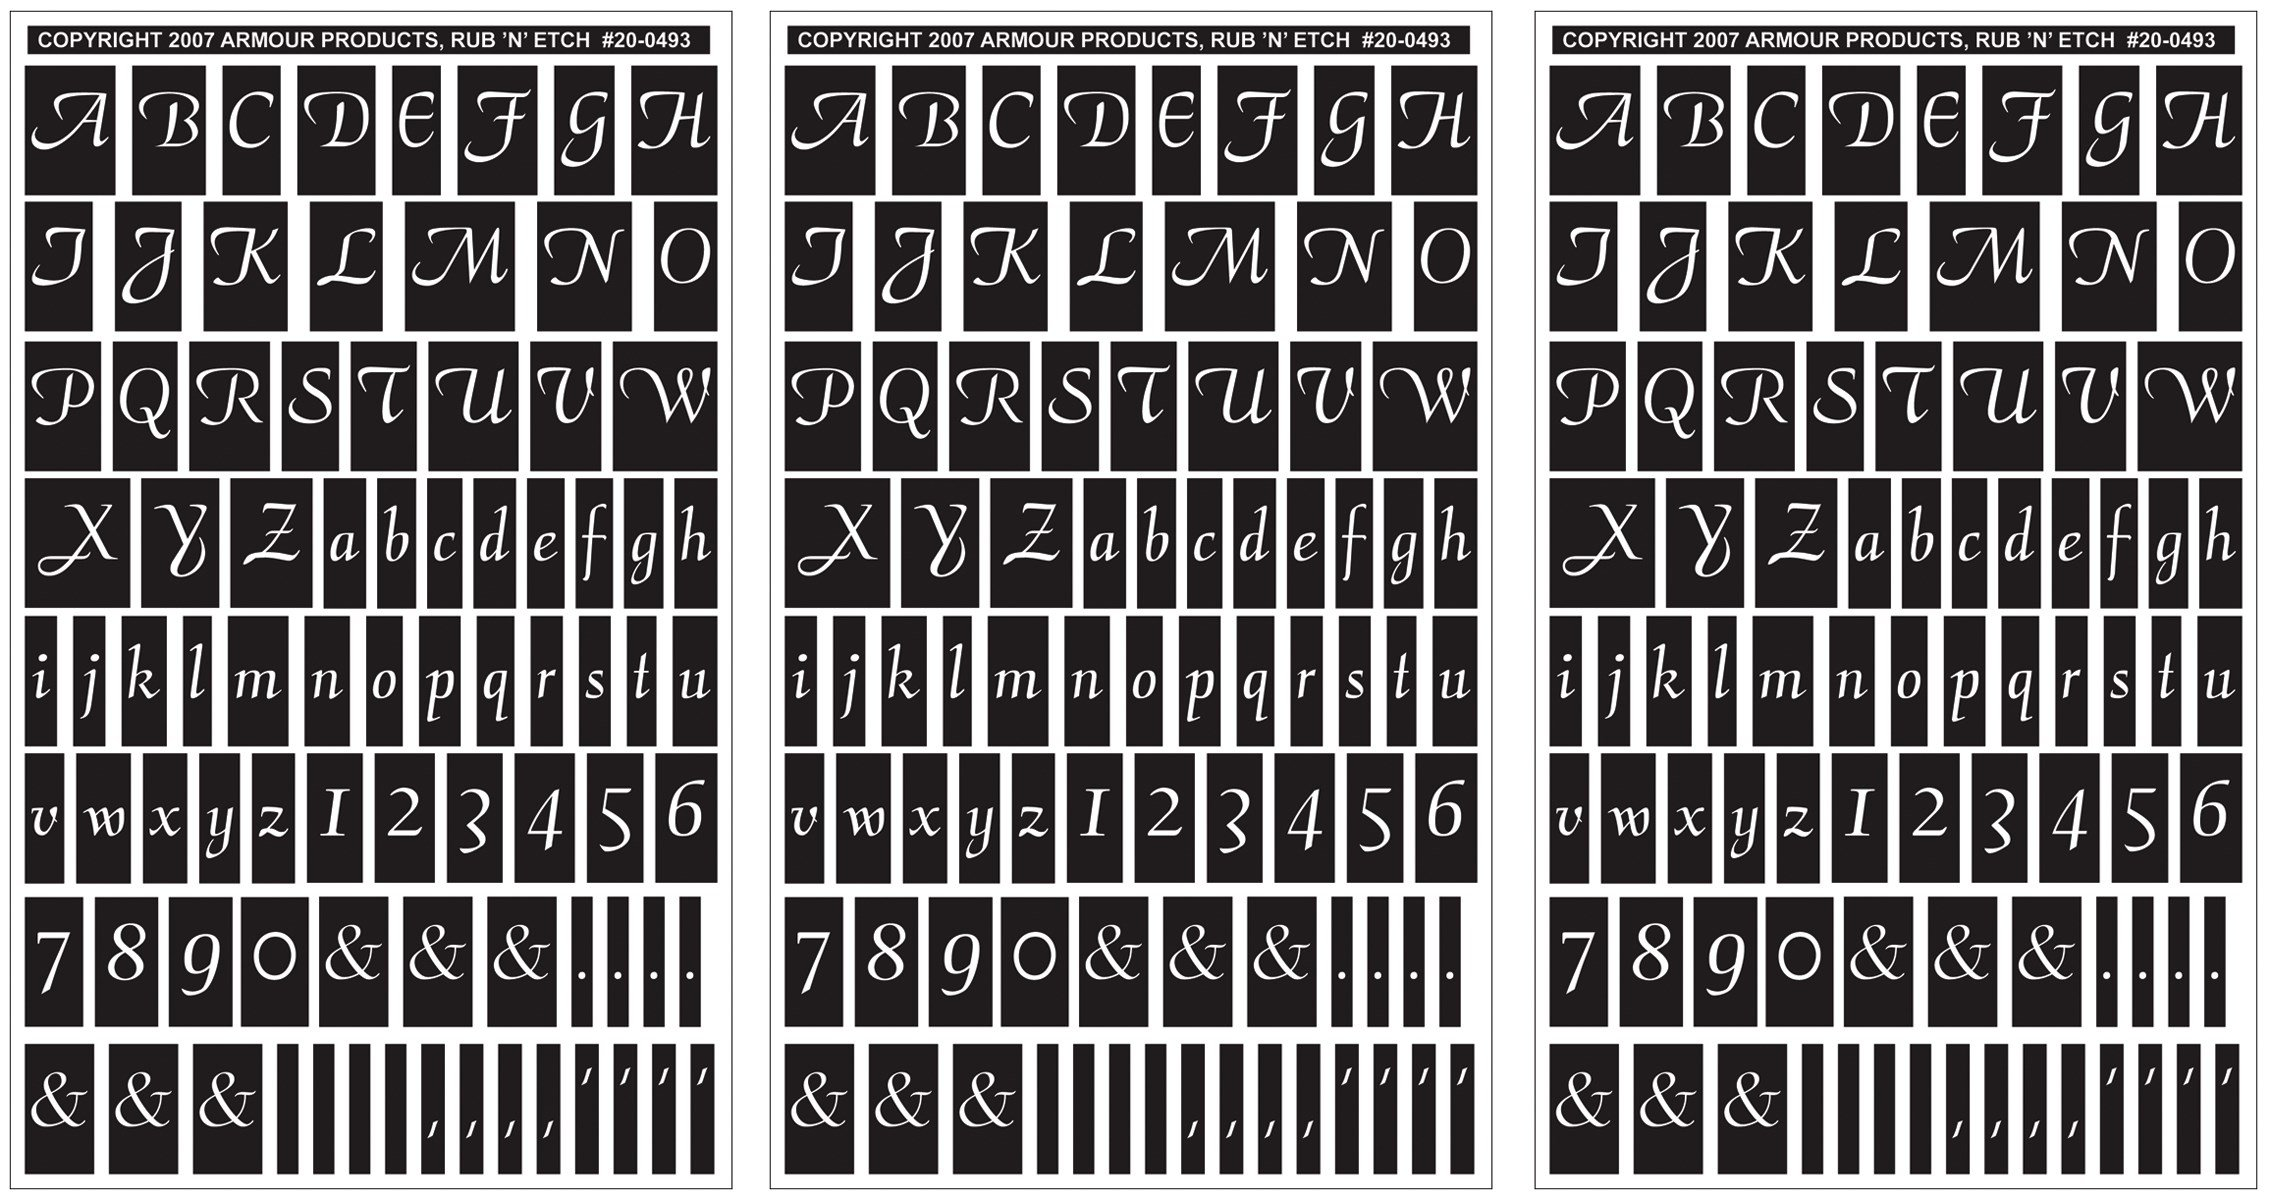 Armour Products Rub 'n' Etch Glass Etching Stencils 5in. x 8in. 3/Pkg Script Letters & Numbers 12-7032 by Armour